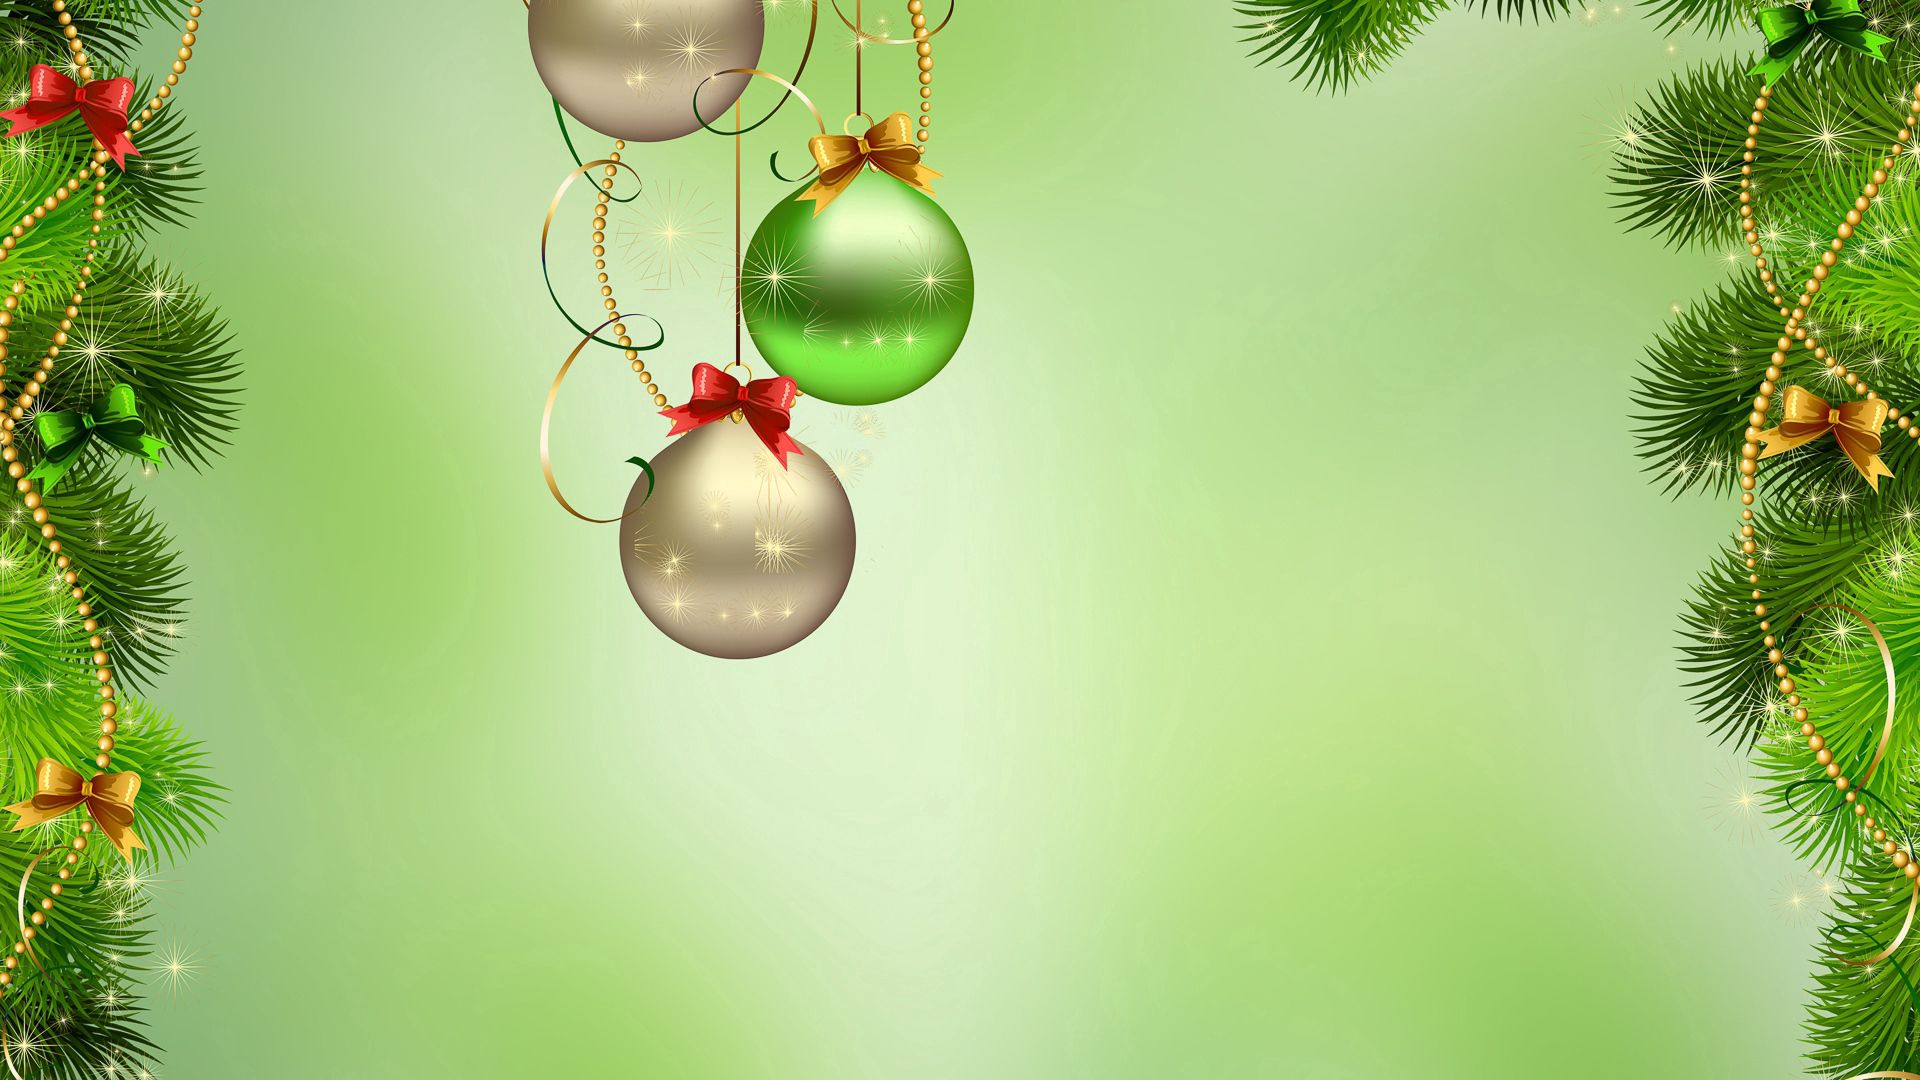 128098 Screensavers and Wallpapers Balls for phone. Download Holidays, New Year, Christmas, Christmas Decorations, Balls, Christmas Tree Decoration pictures for free